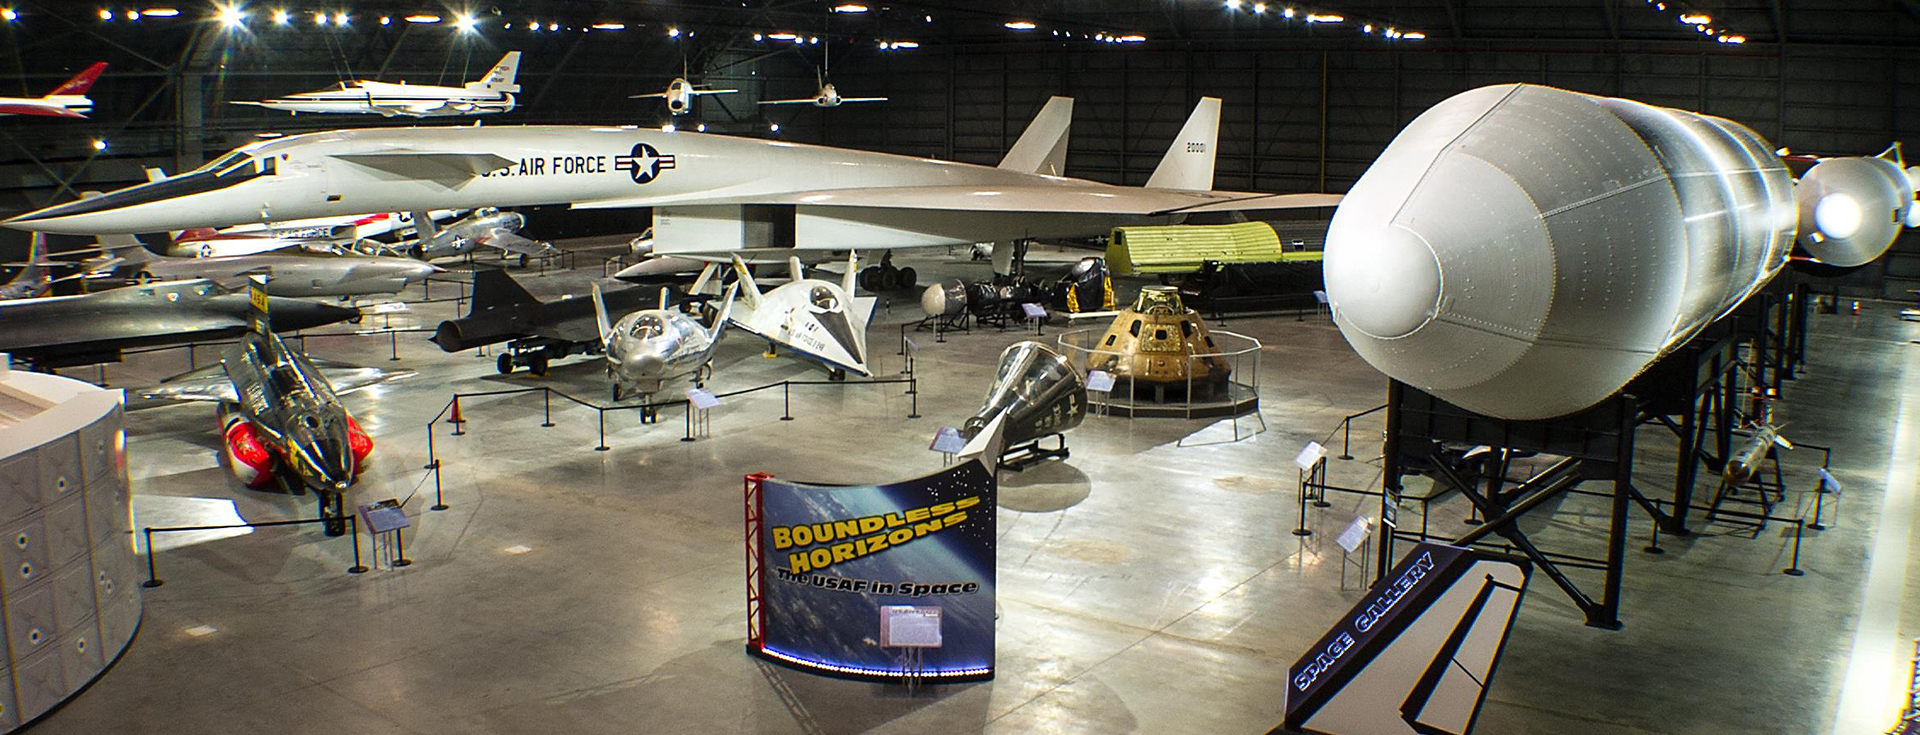 Air Force Museum Web